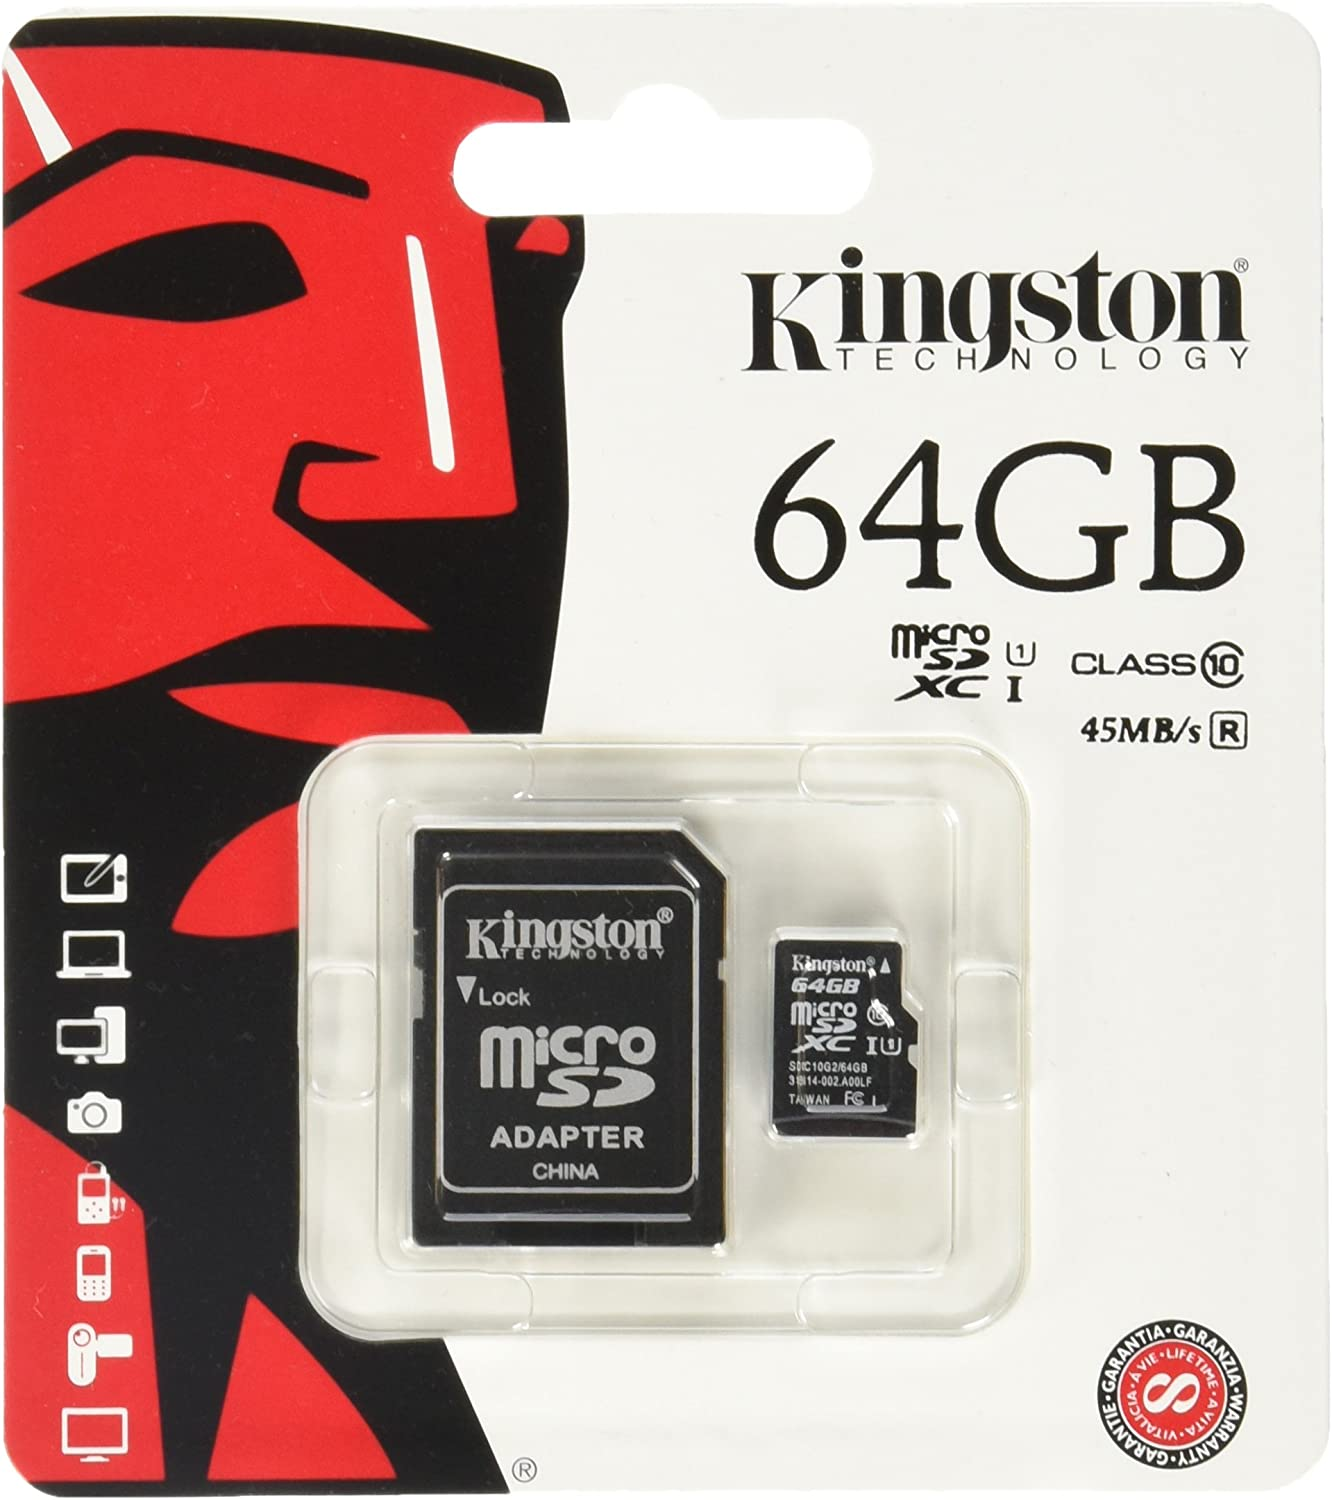 Kingston Digital 8 GB microSDHC Class 10 UHS-1 Memory Card 30MB/s with Adapter (SDC10/8GB)